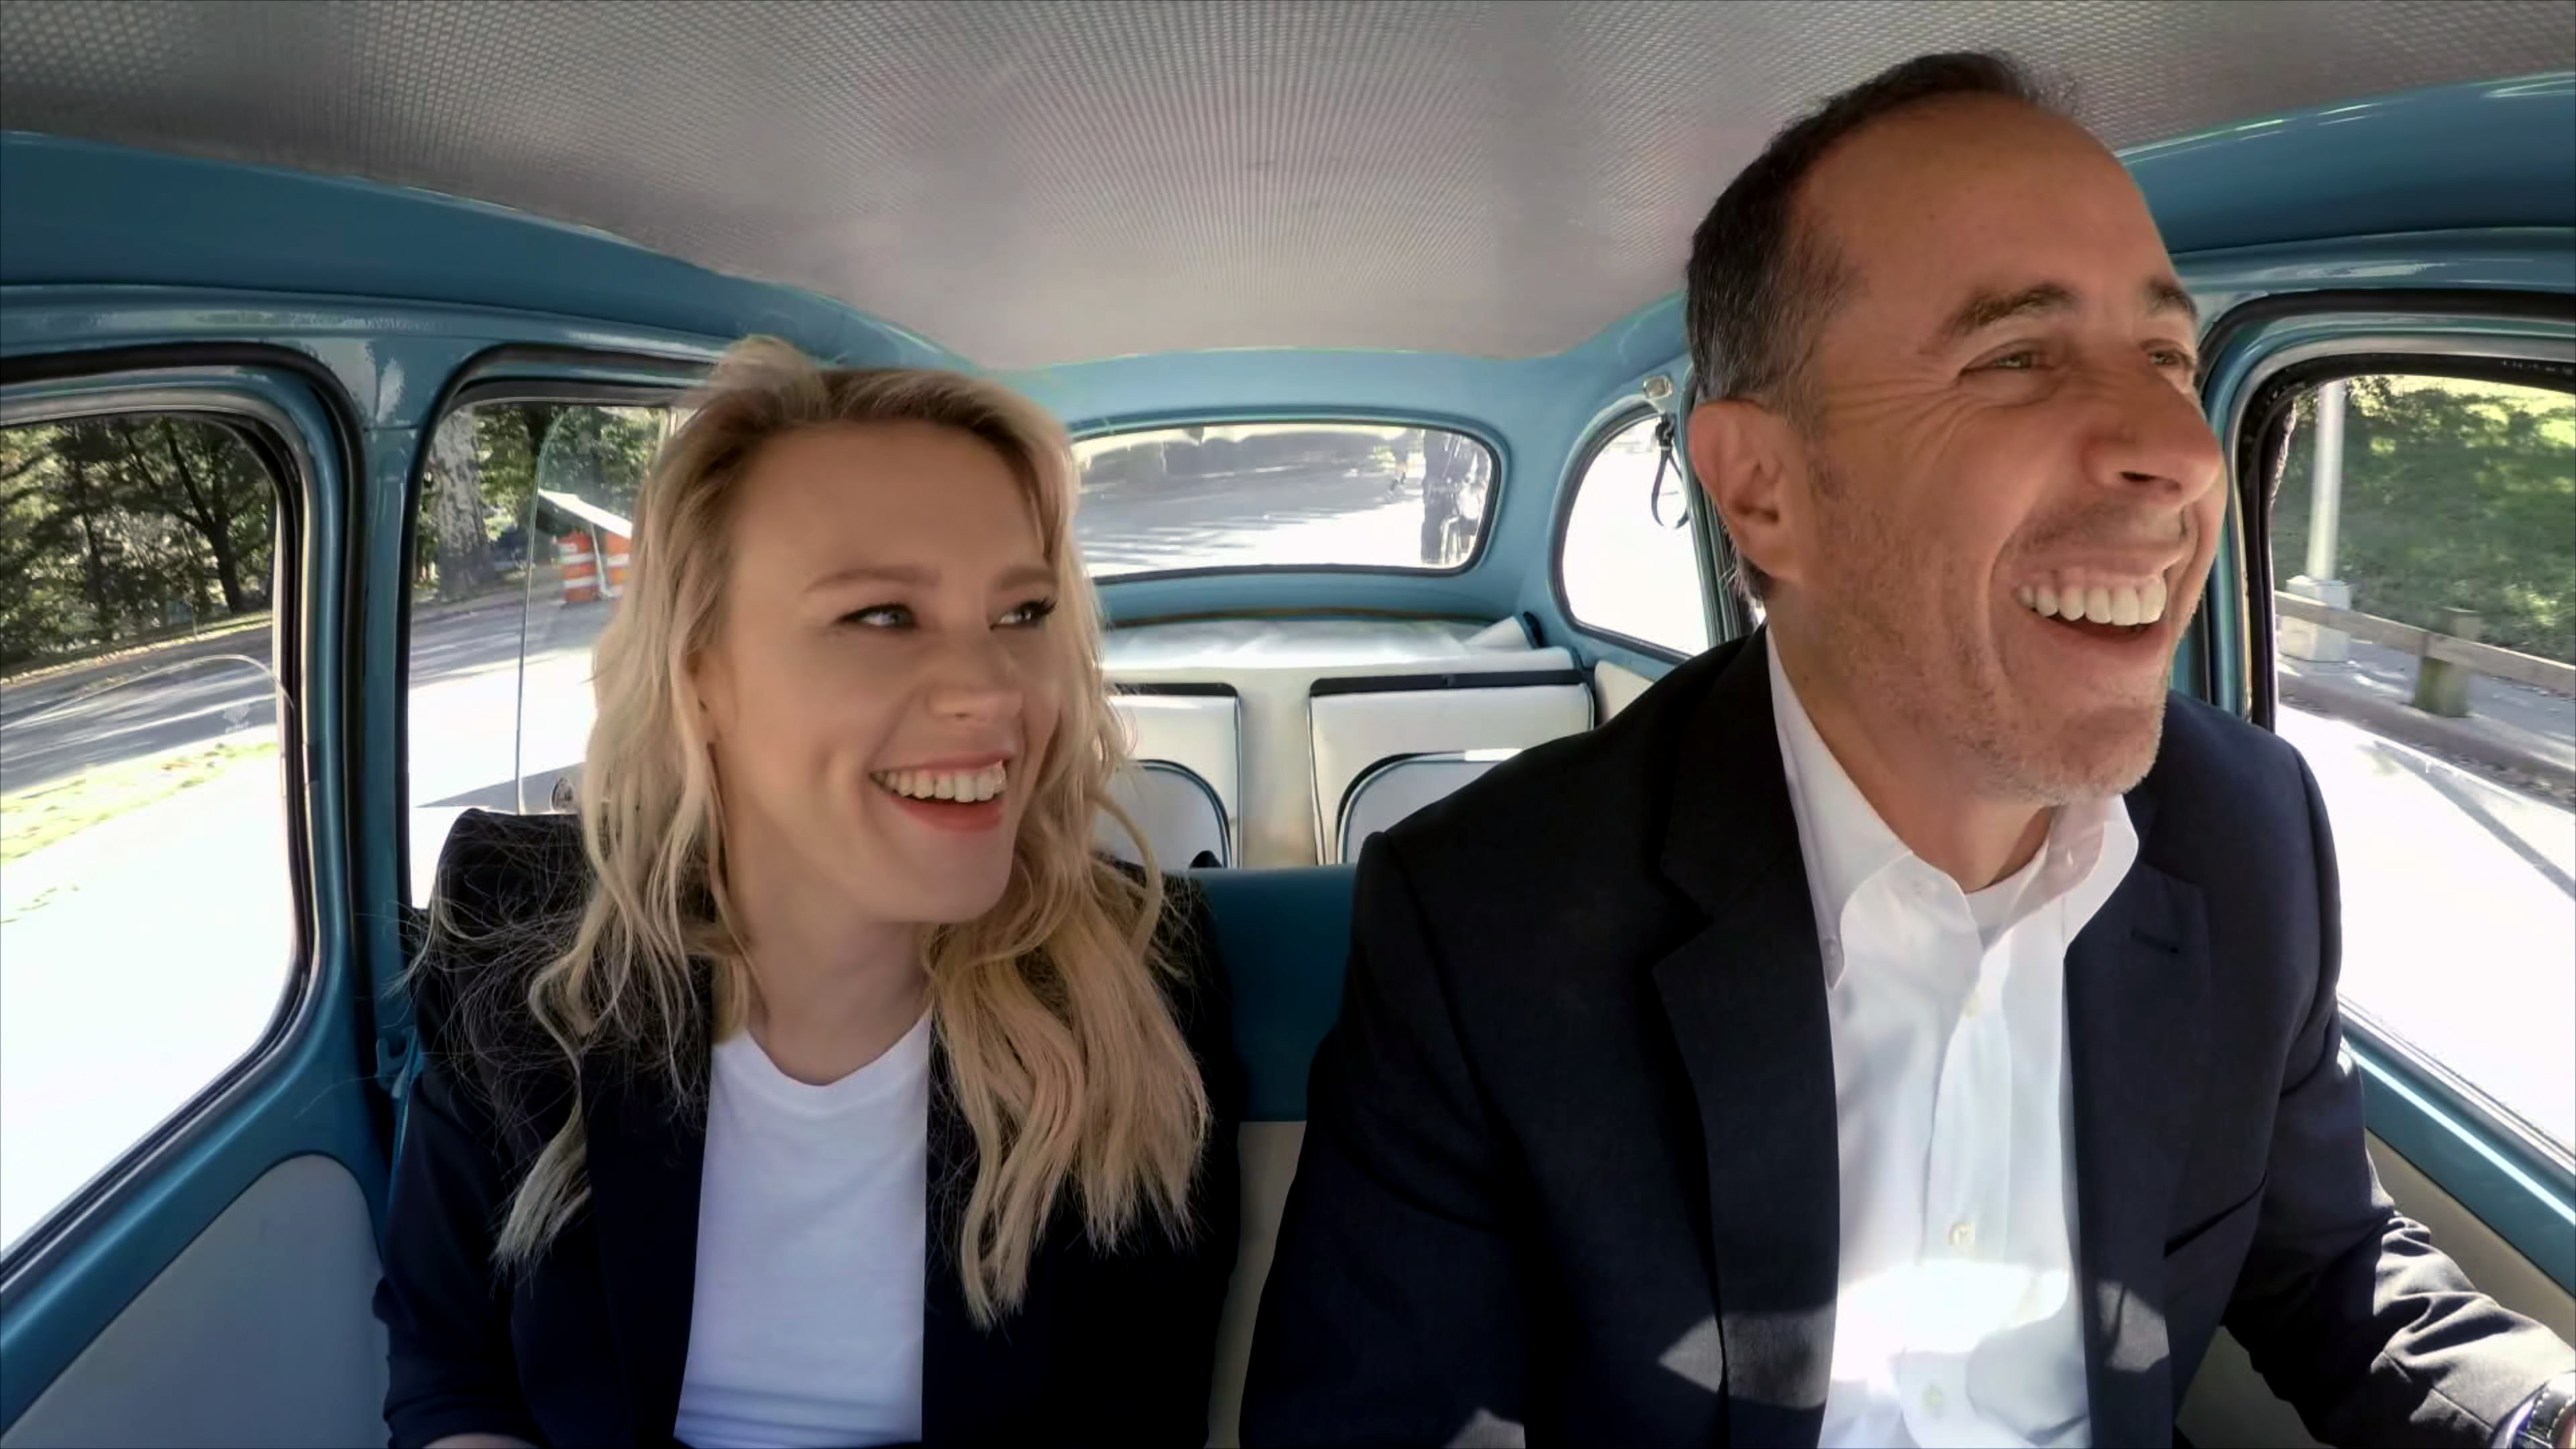 comedians in cars getting coffee torrent